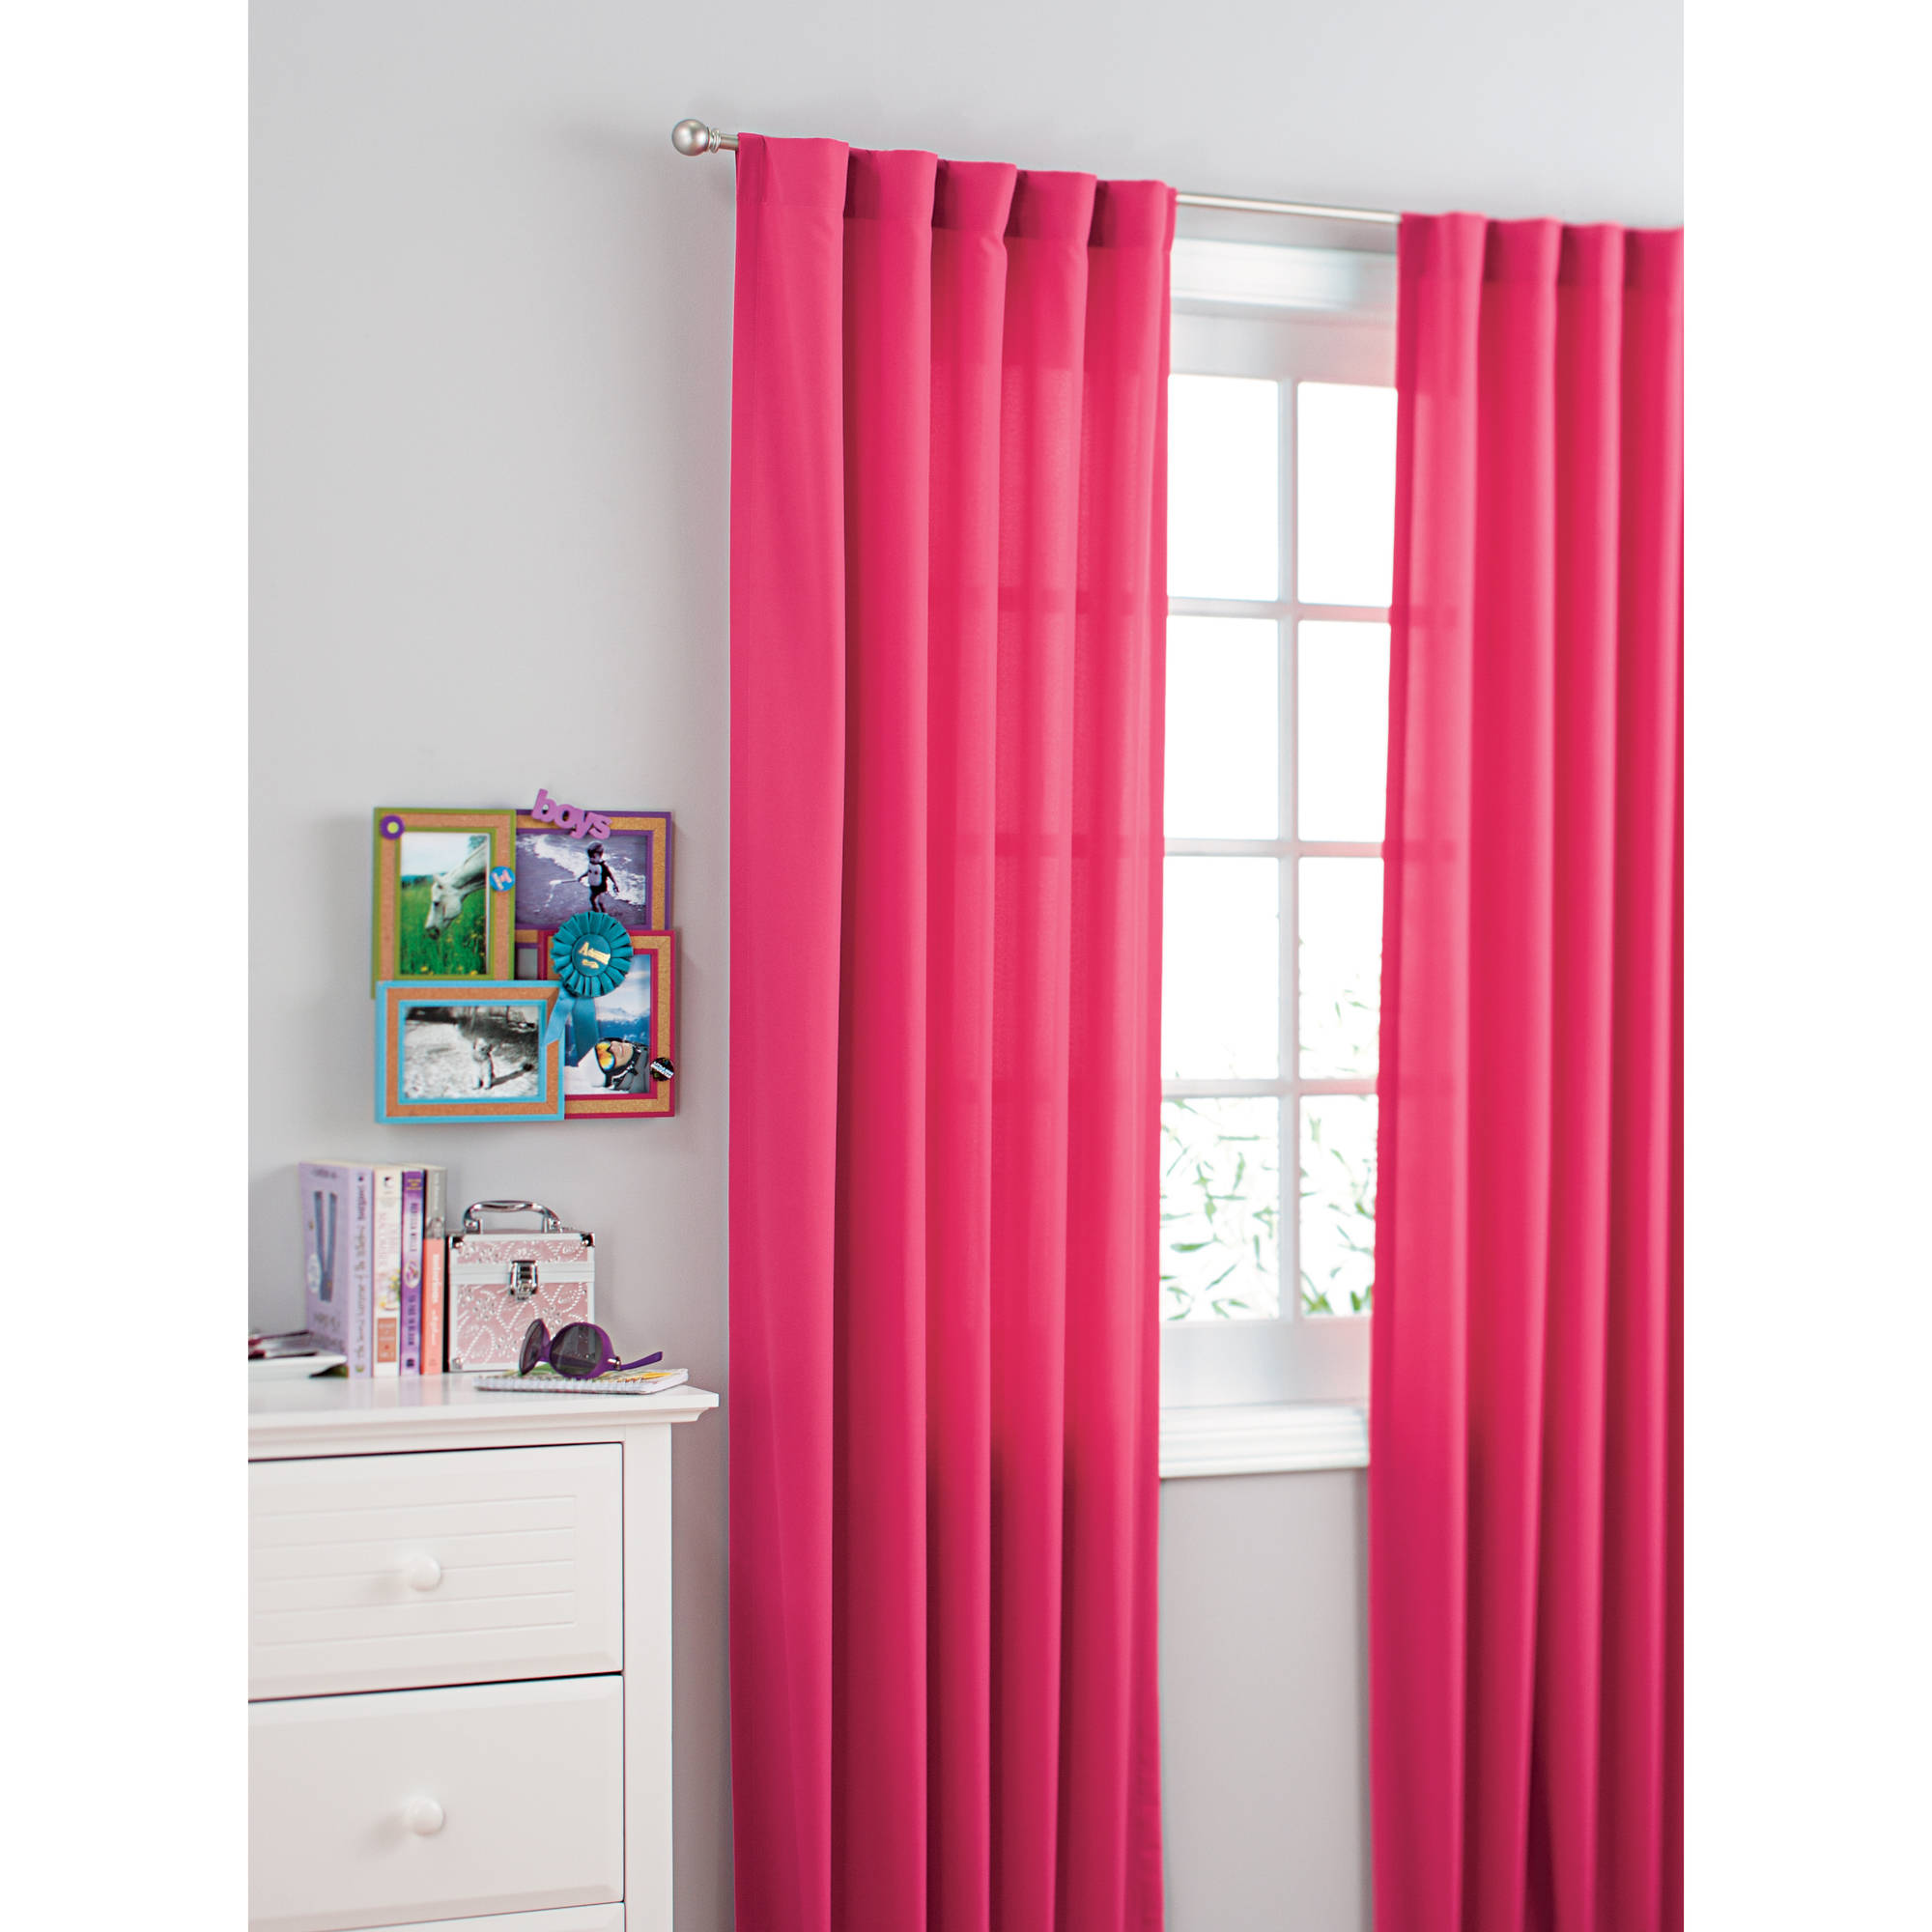 ikea girl drapes pink red all decor flower including paint room kid white curtain entrancing light beautiful ideas wall various and bedroom using b decorating for accessories ruffle small